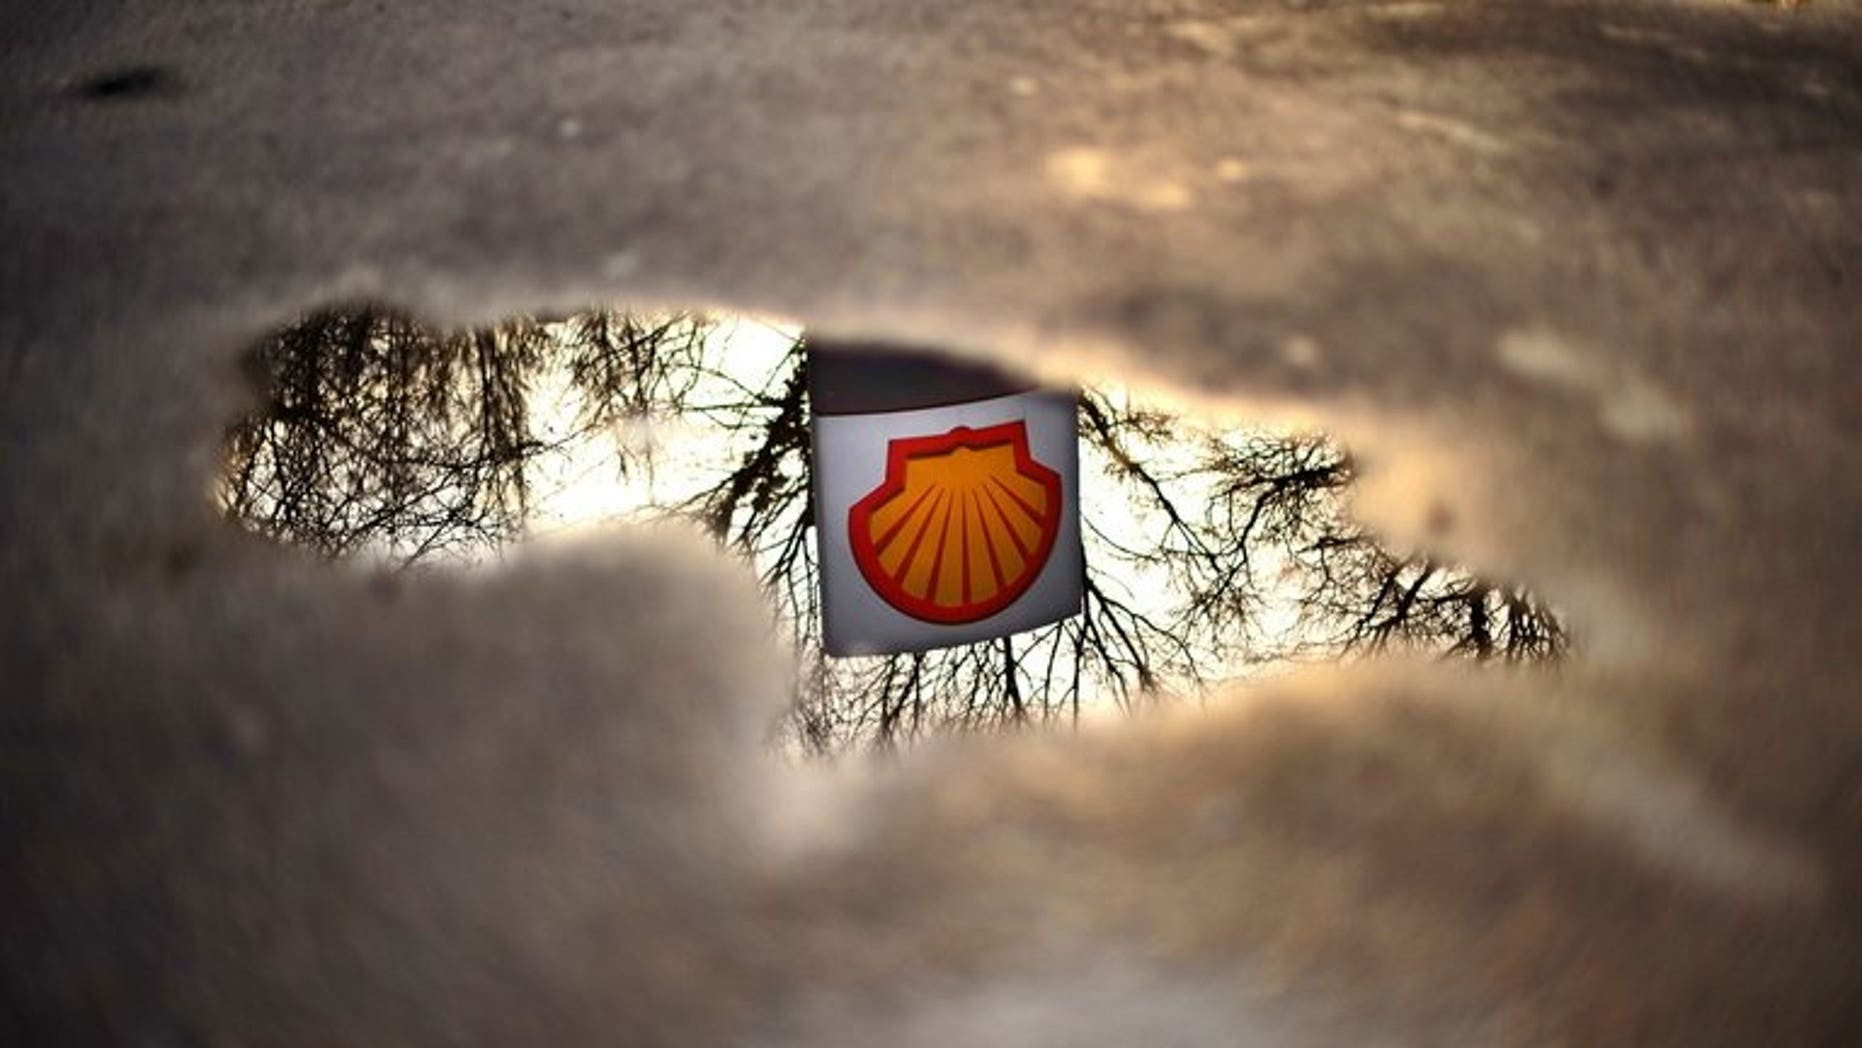 Energy giant Royal Dutch Shell on Thursday said its net profits plunged by 57 percent in the second quarter compared with the equivalent period a year earlier.